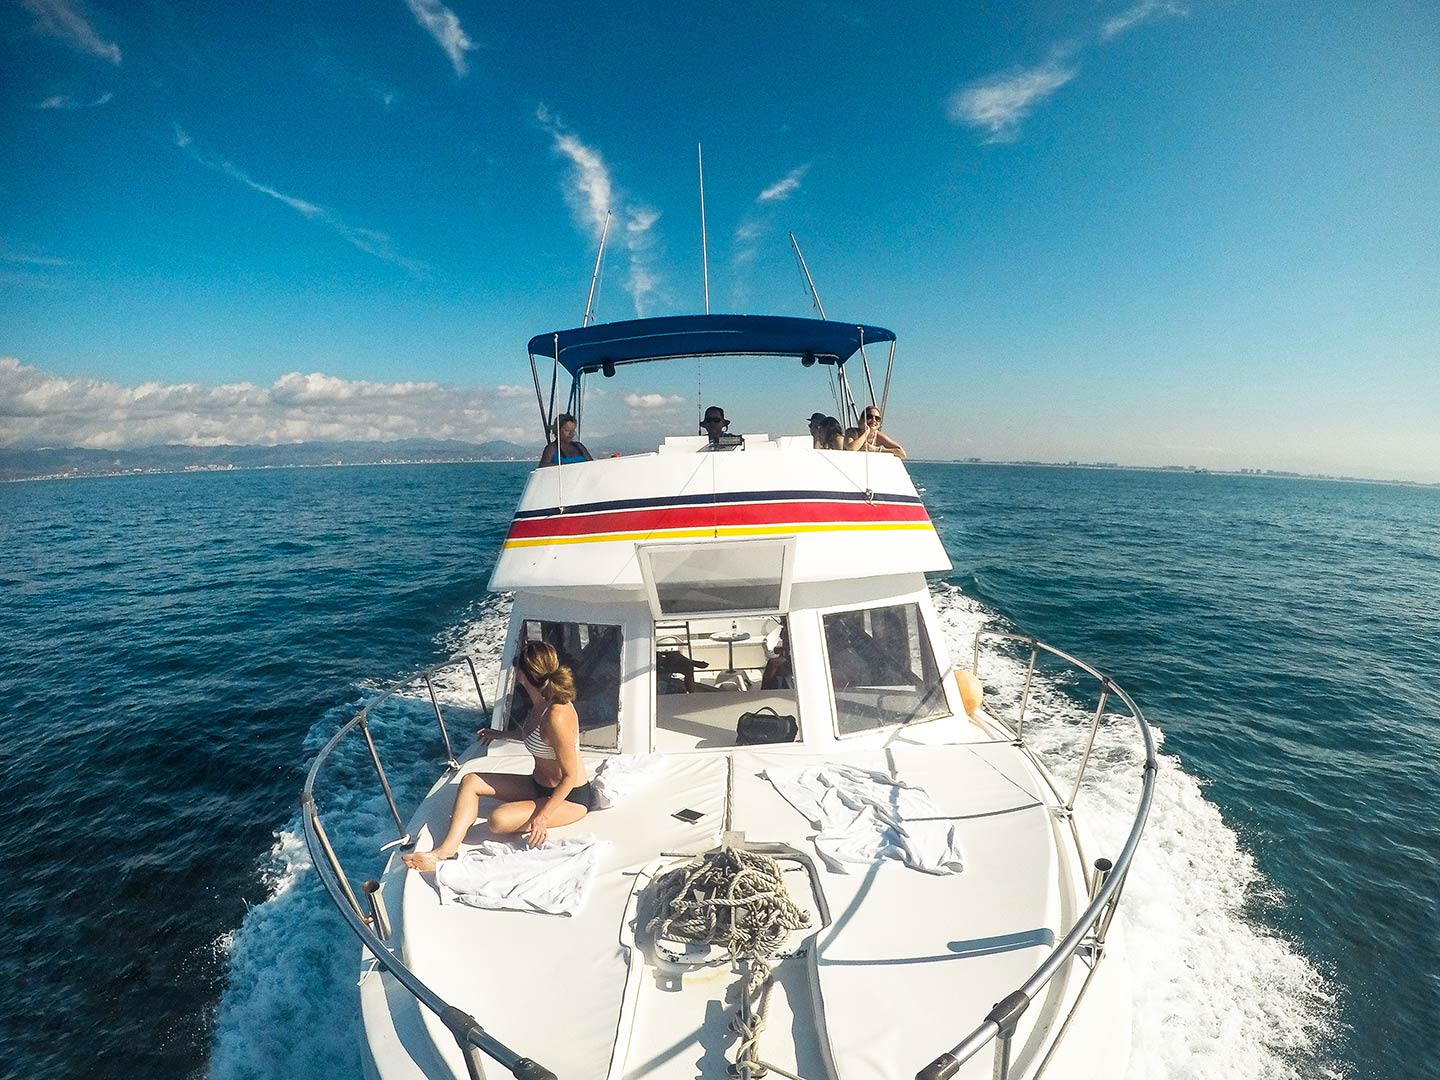 Anglers relax on the way out to sea from Puerto Vallarta on a fishing charter